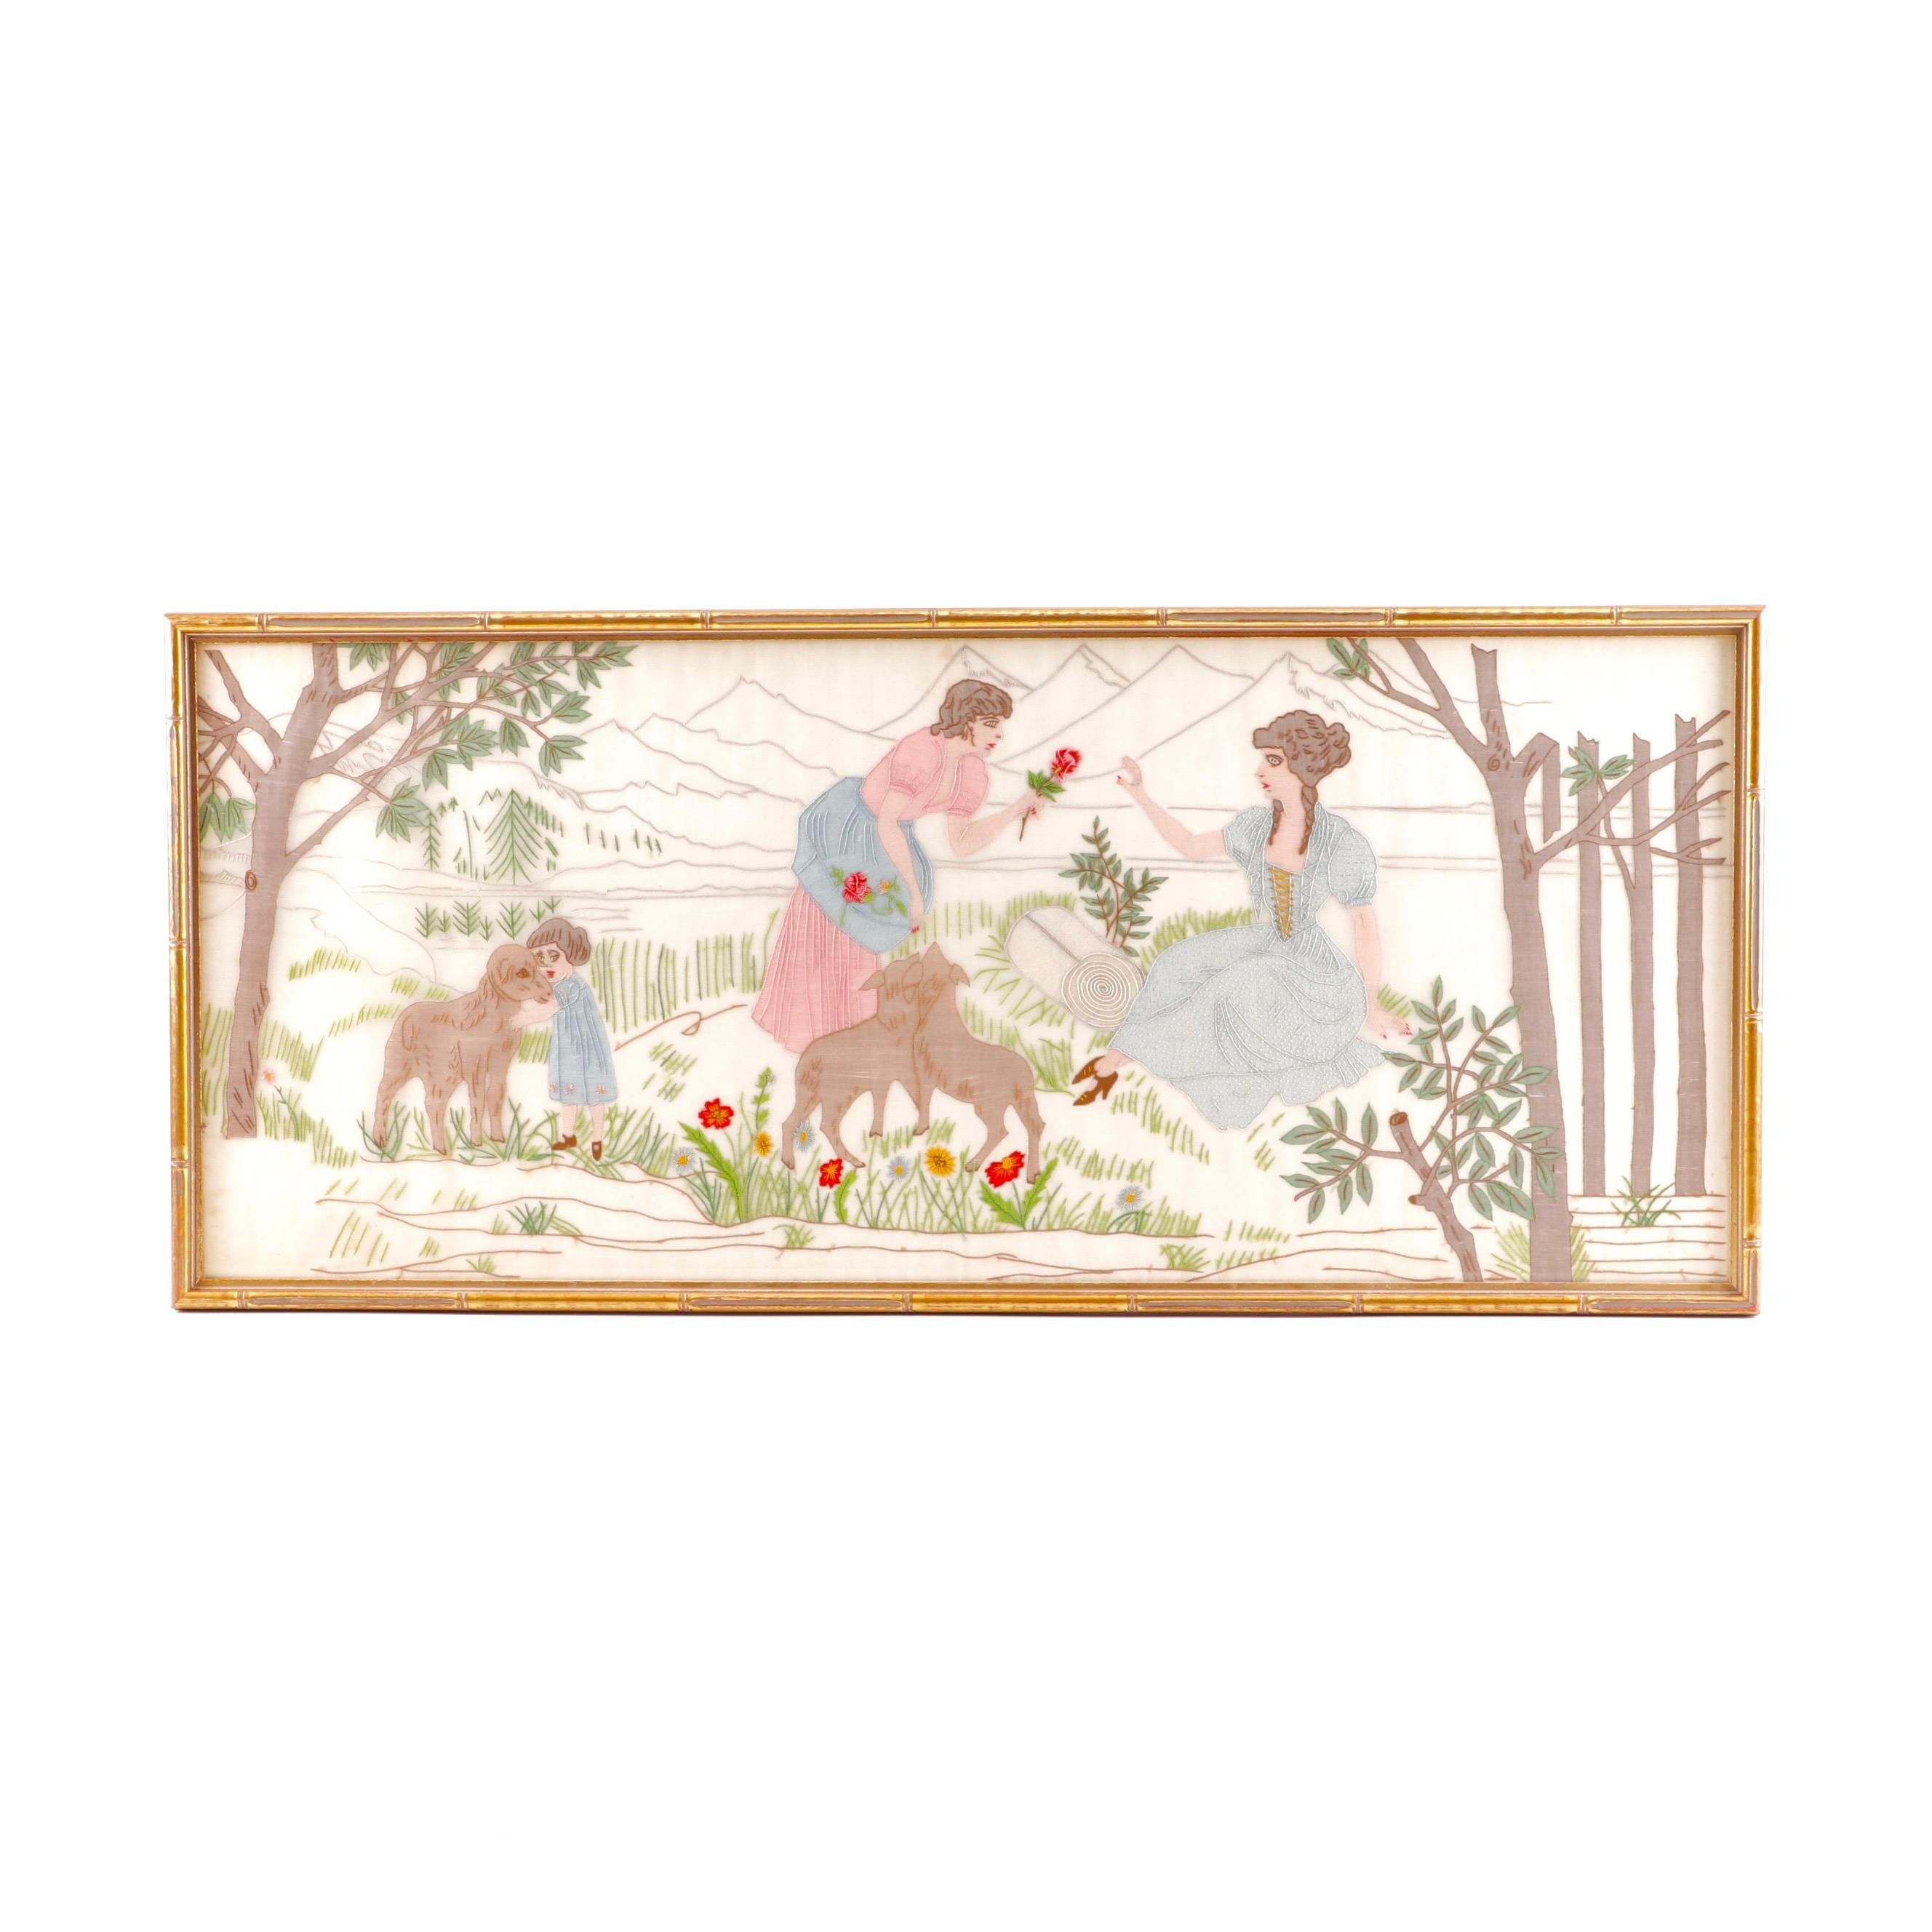 Framed Embroidered Textile Panel Depicting a Meadow Scene